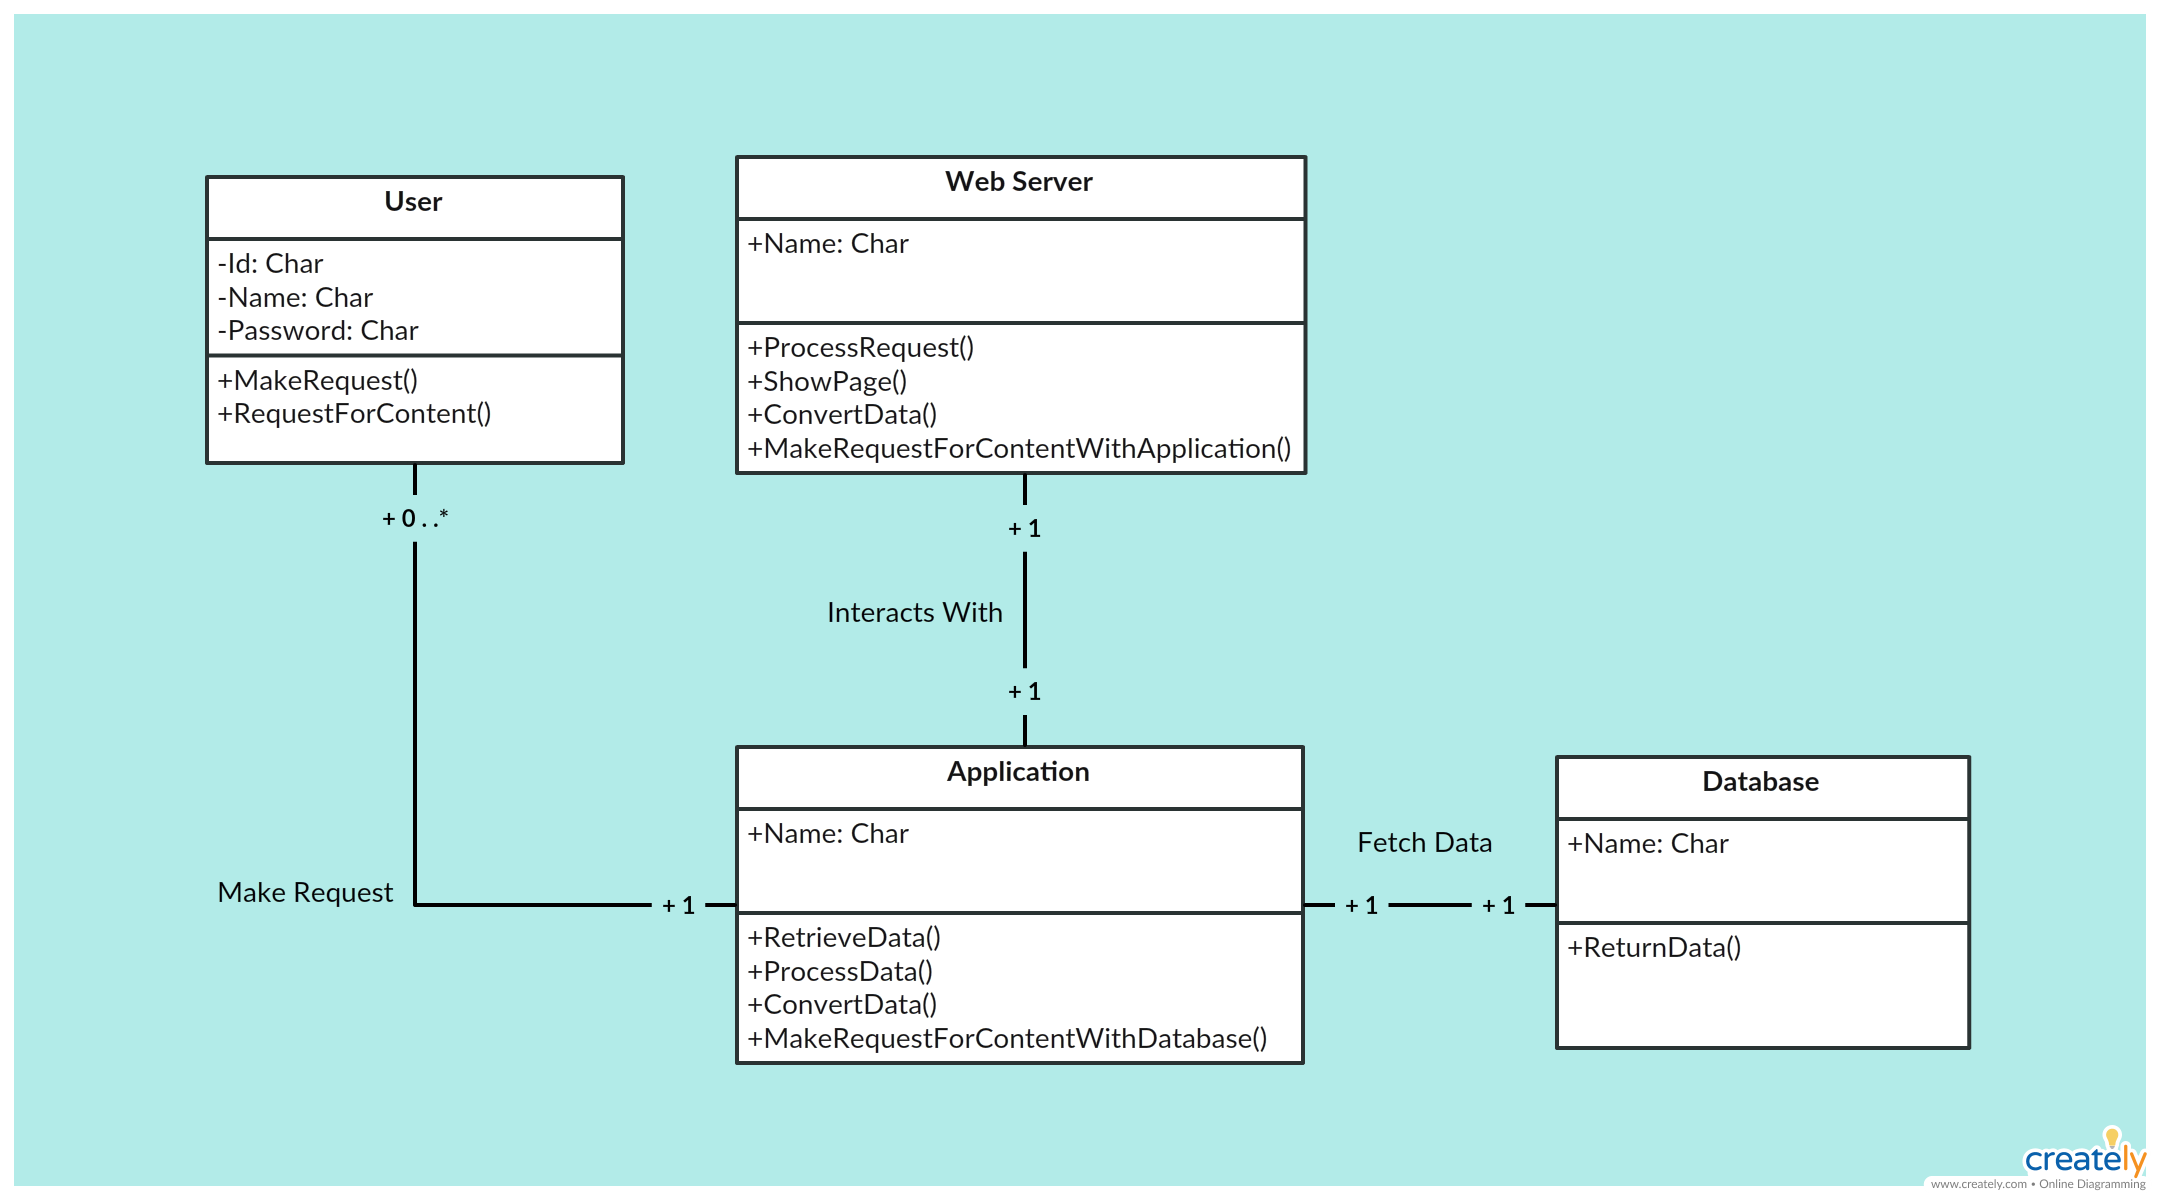 medium resolution of a uml class diagram showing content management system class diagram you can edit this uml class diagram using creately diagramming tool and include in